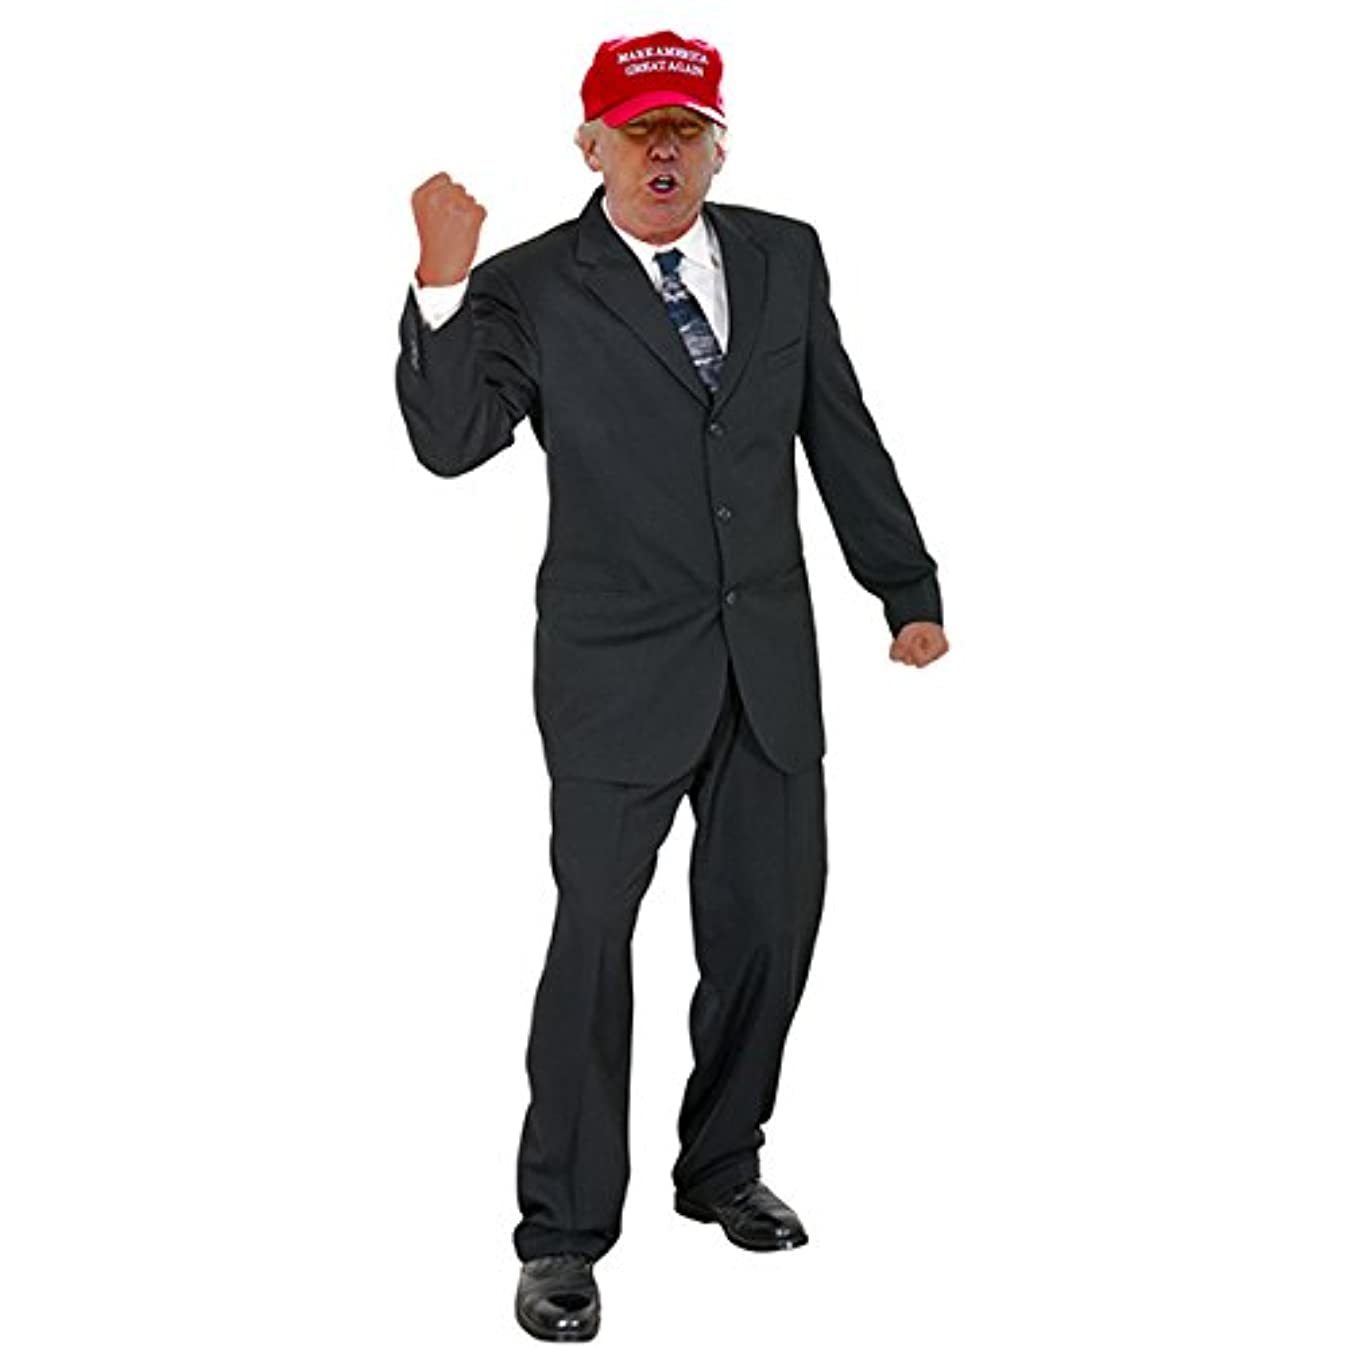 Wet Paint Printing + Design H38009V2 Donald Trump Red Hat Cardboard Cutout Standup